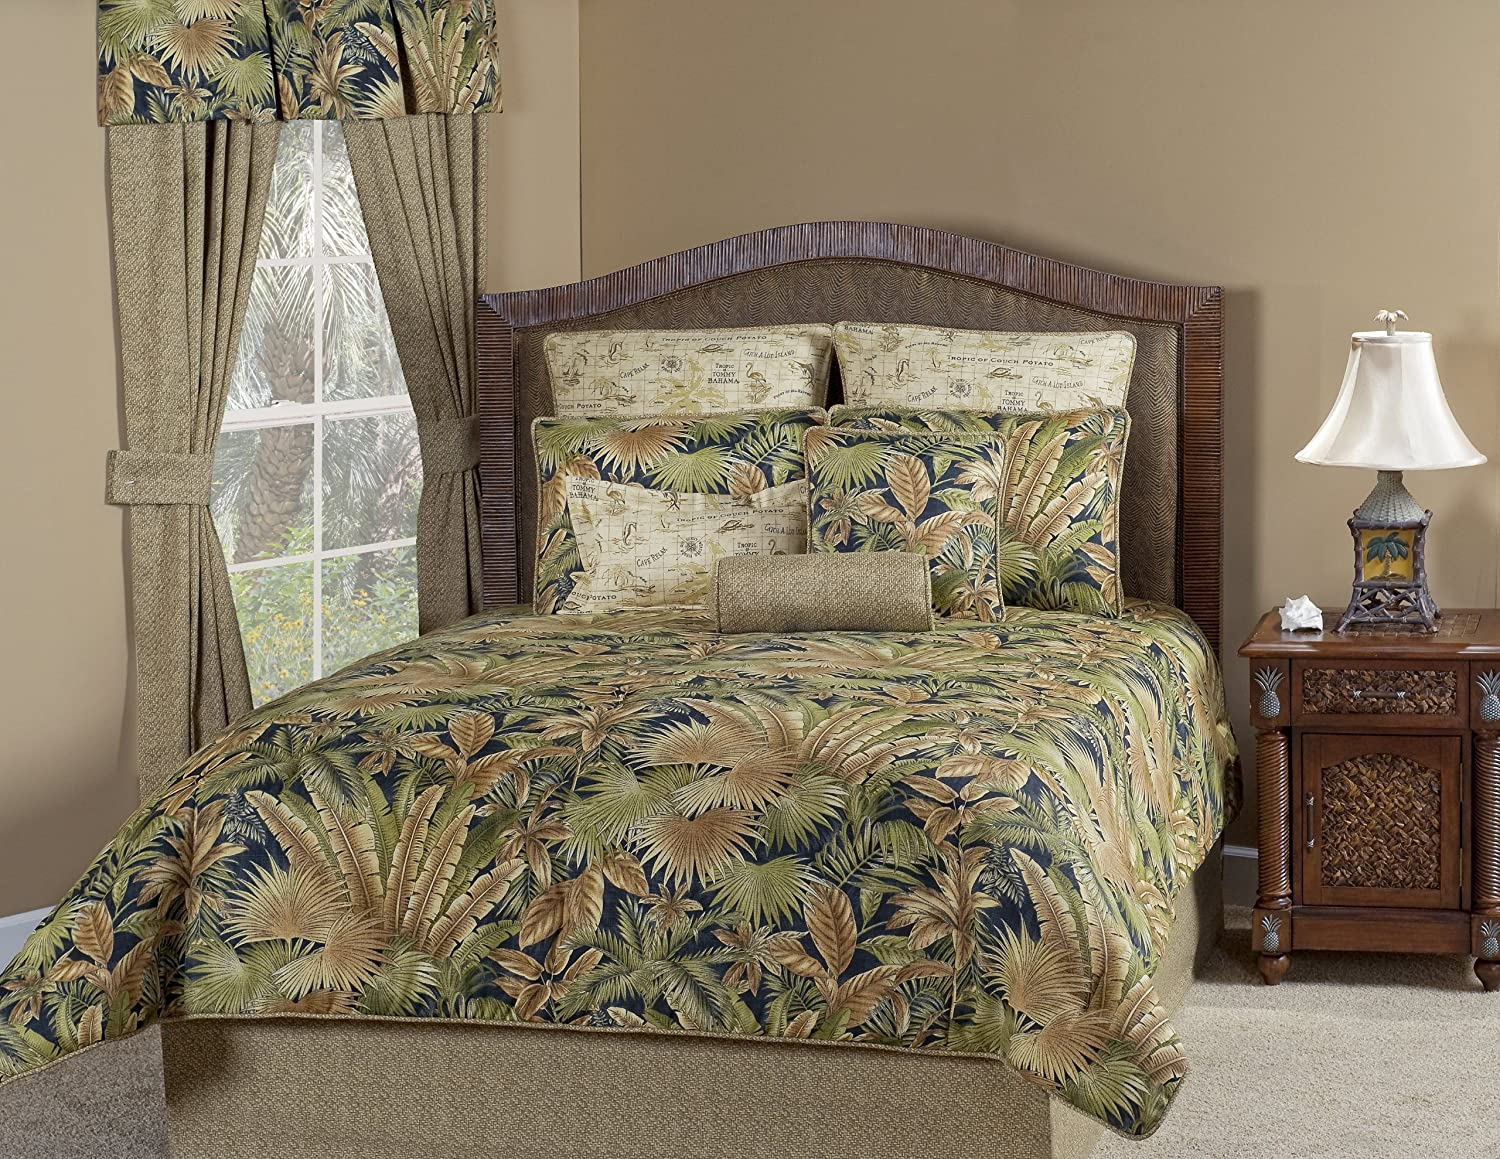 Bahamian Nights Bedding Collections ~ Tommy Bahama Victor Mill ~ Free Shpg